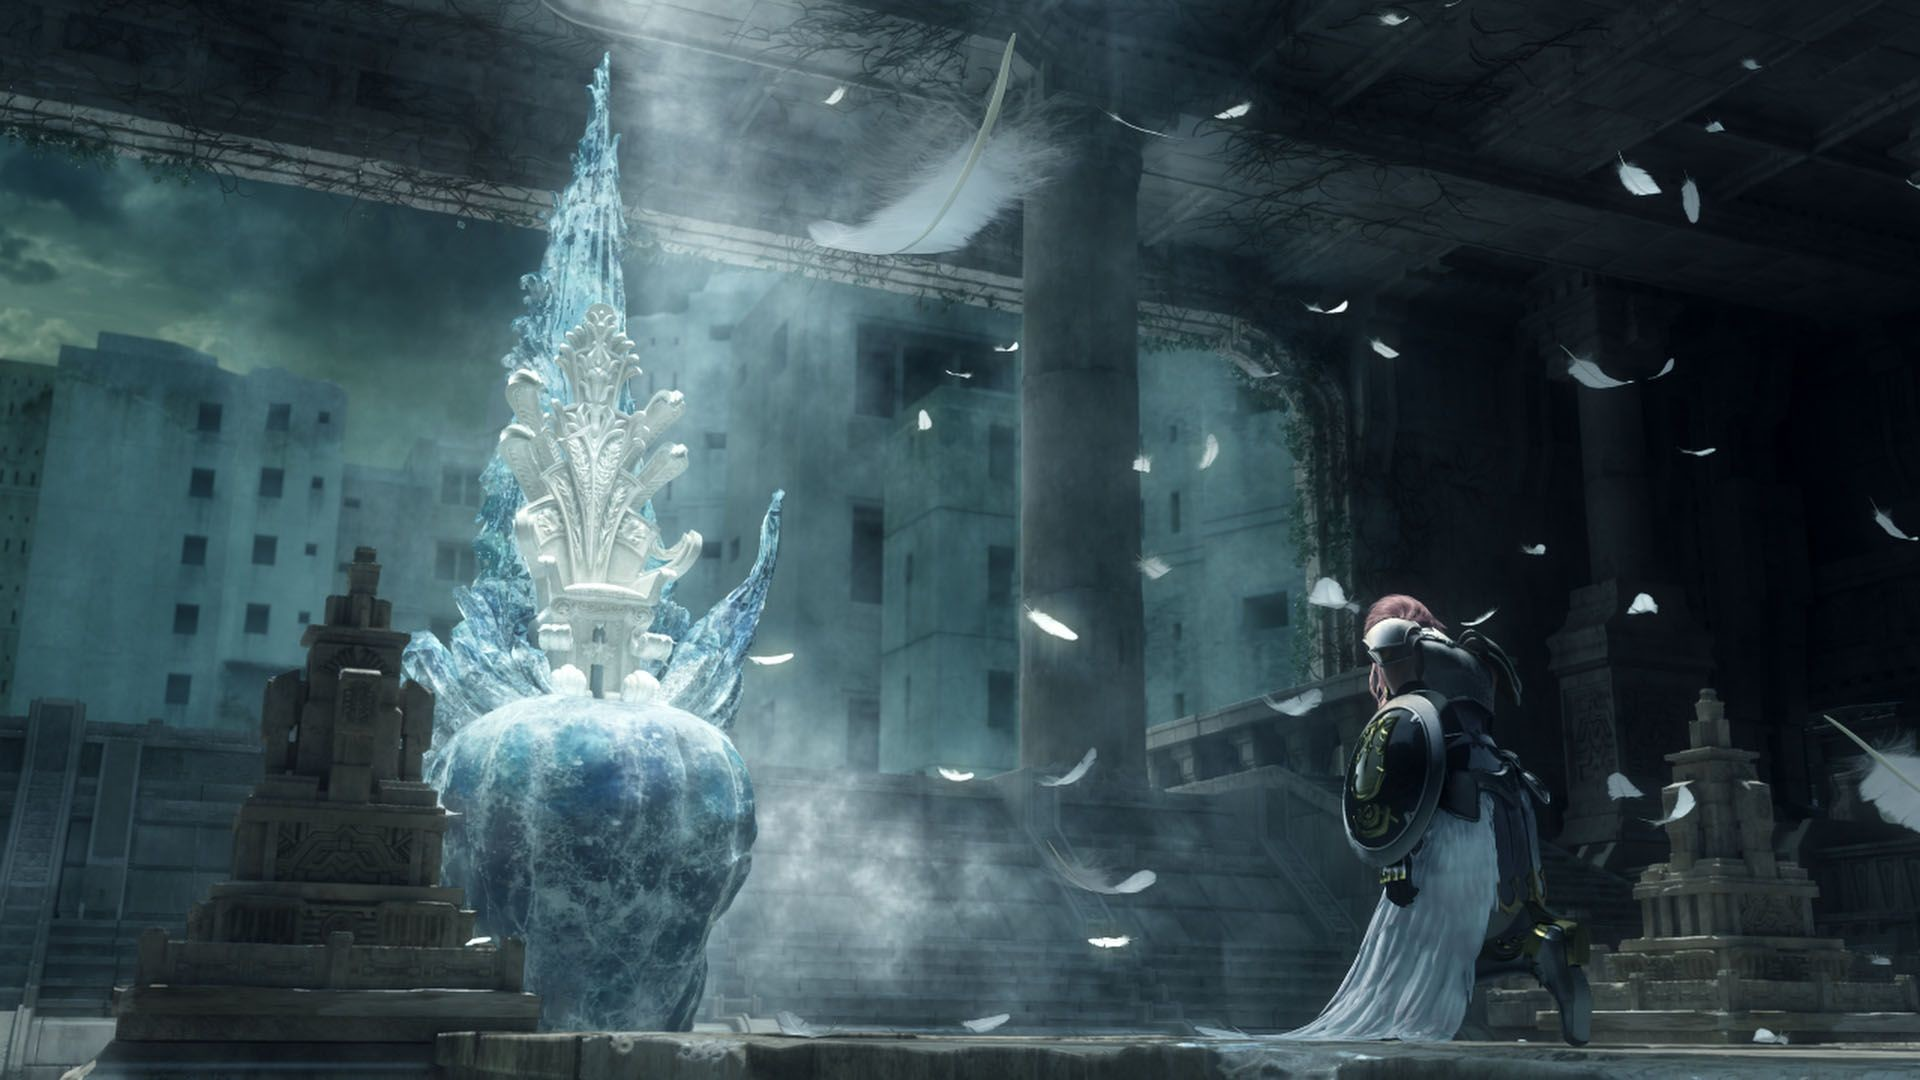 Final Fantasy 13 Cocoon Wallpaper Posted By Christopher Mercado